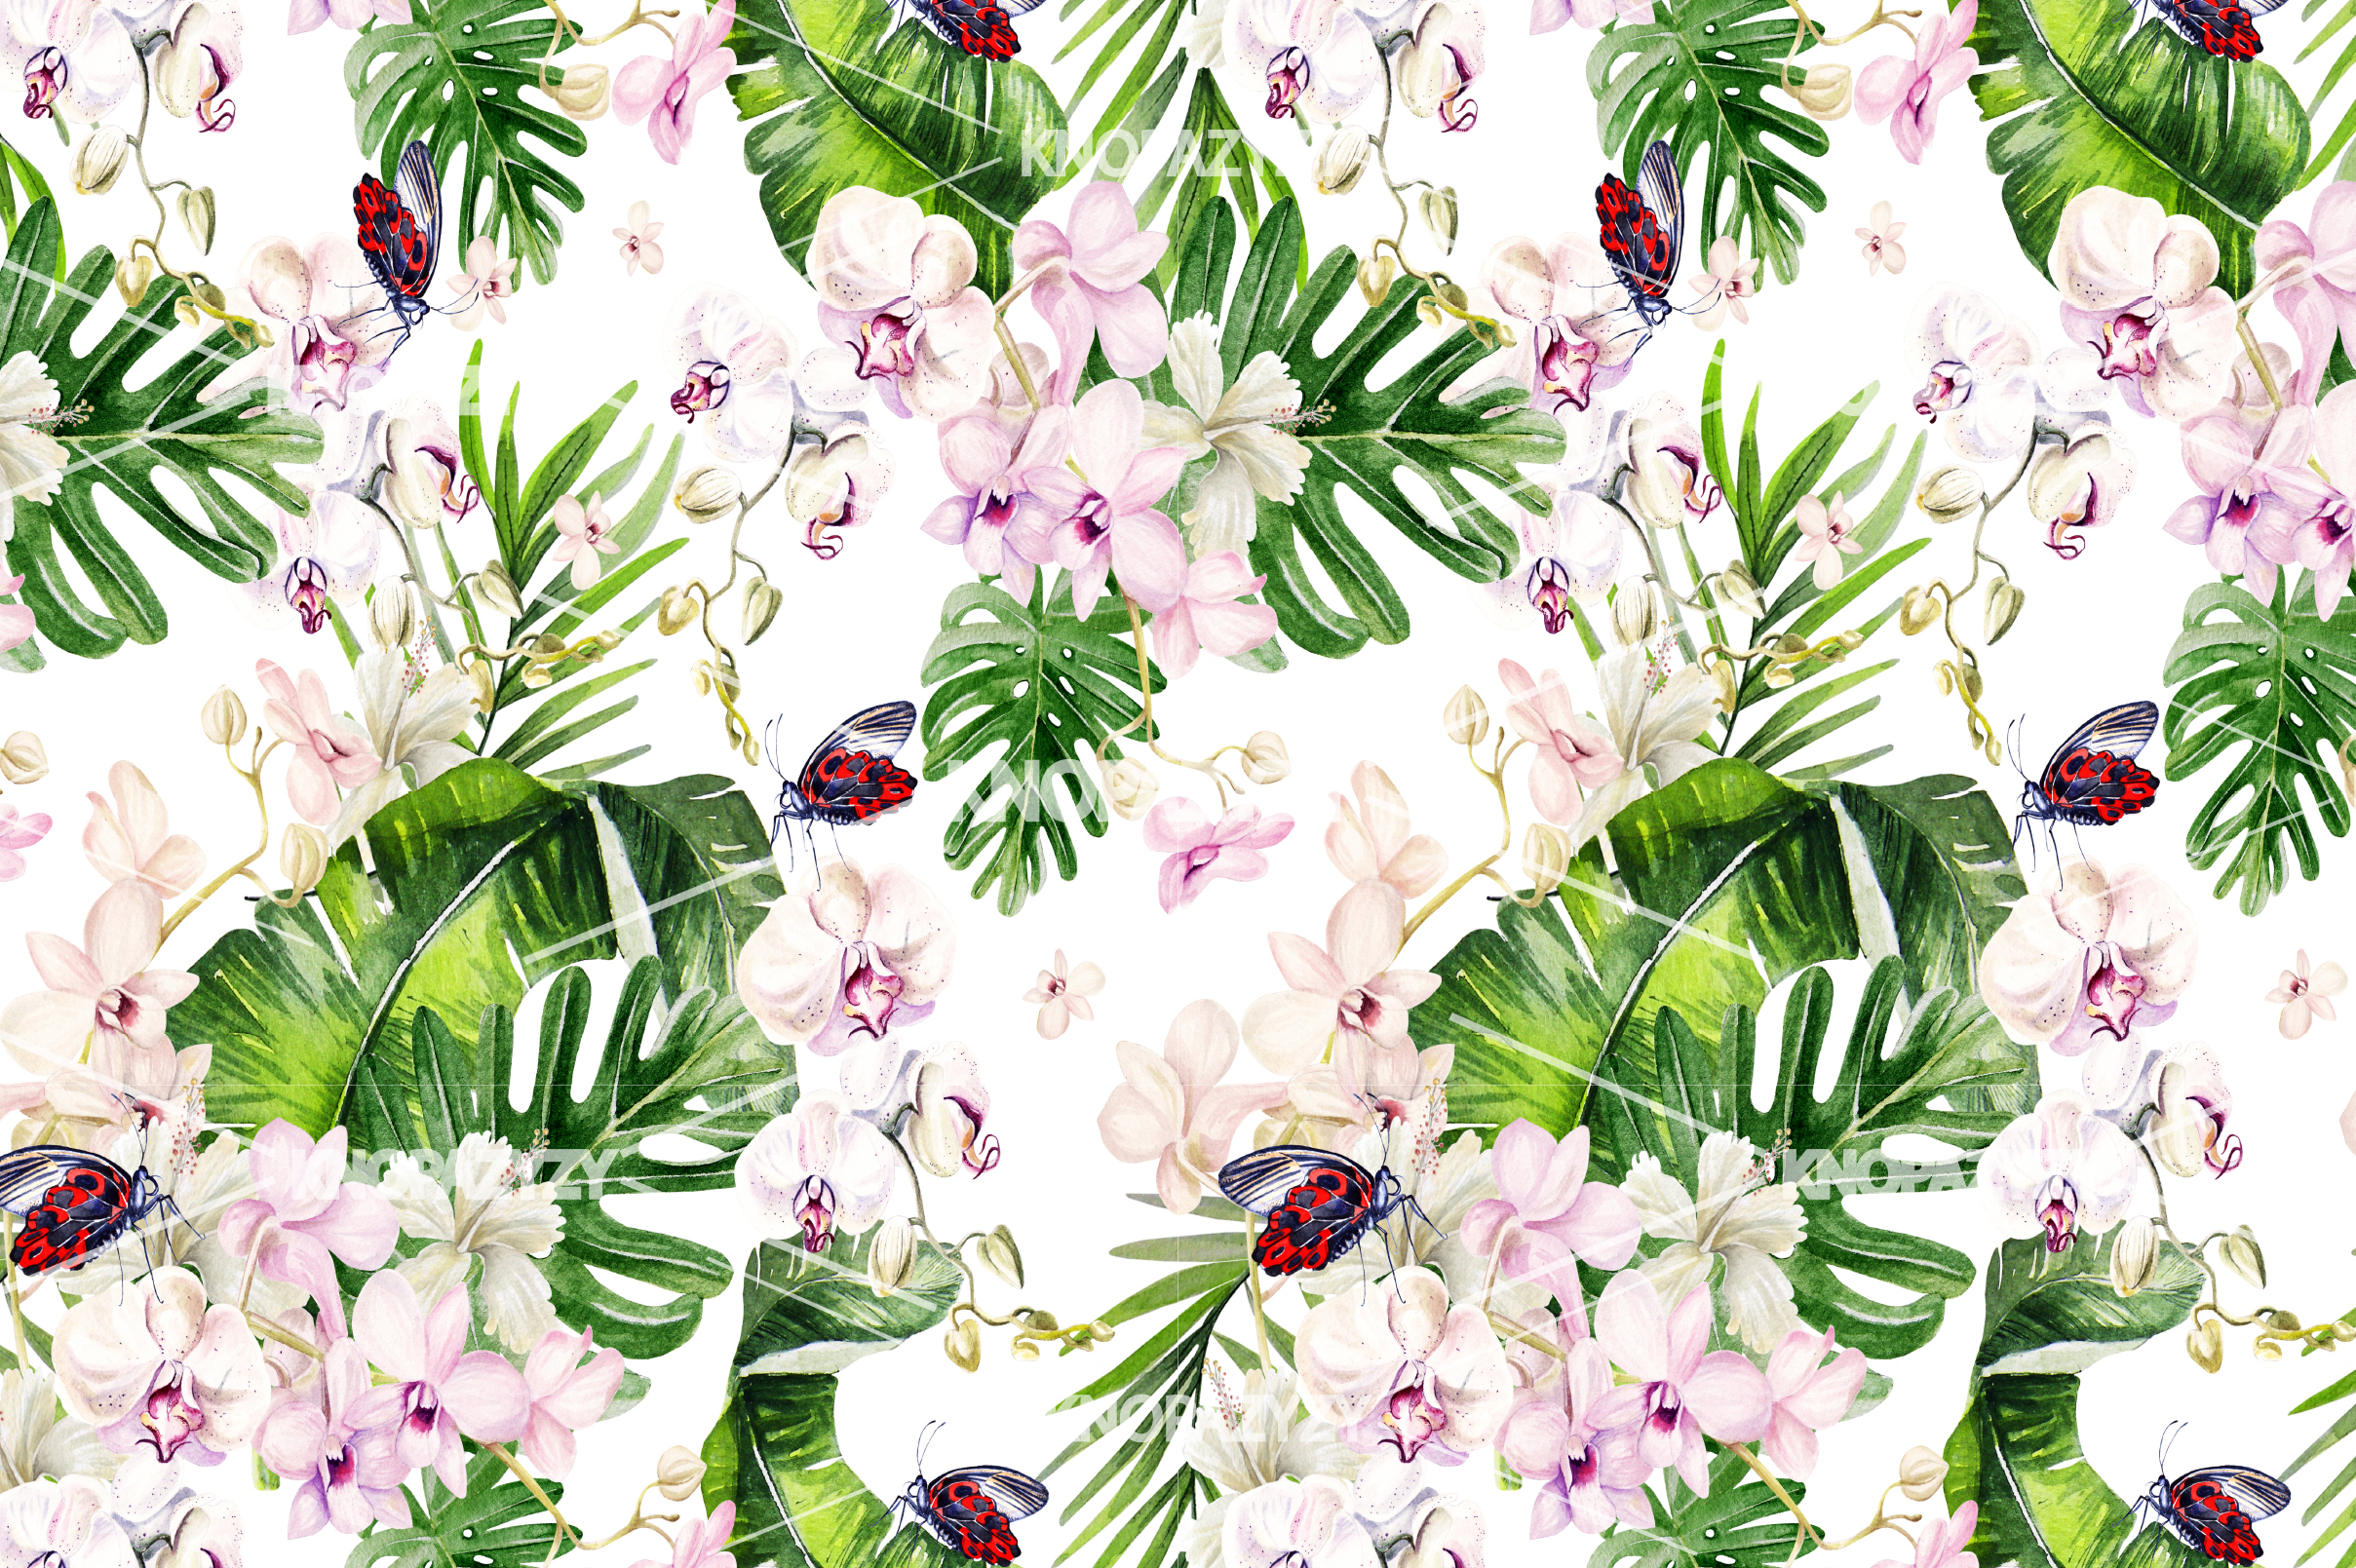 14 Hand drawn watercolor patterns example image 13